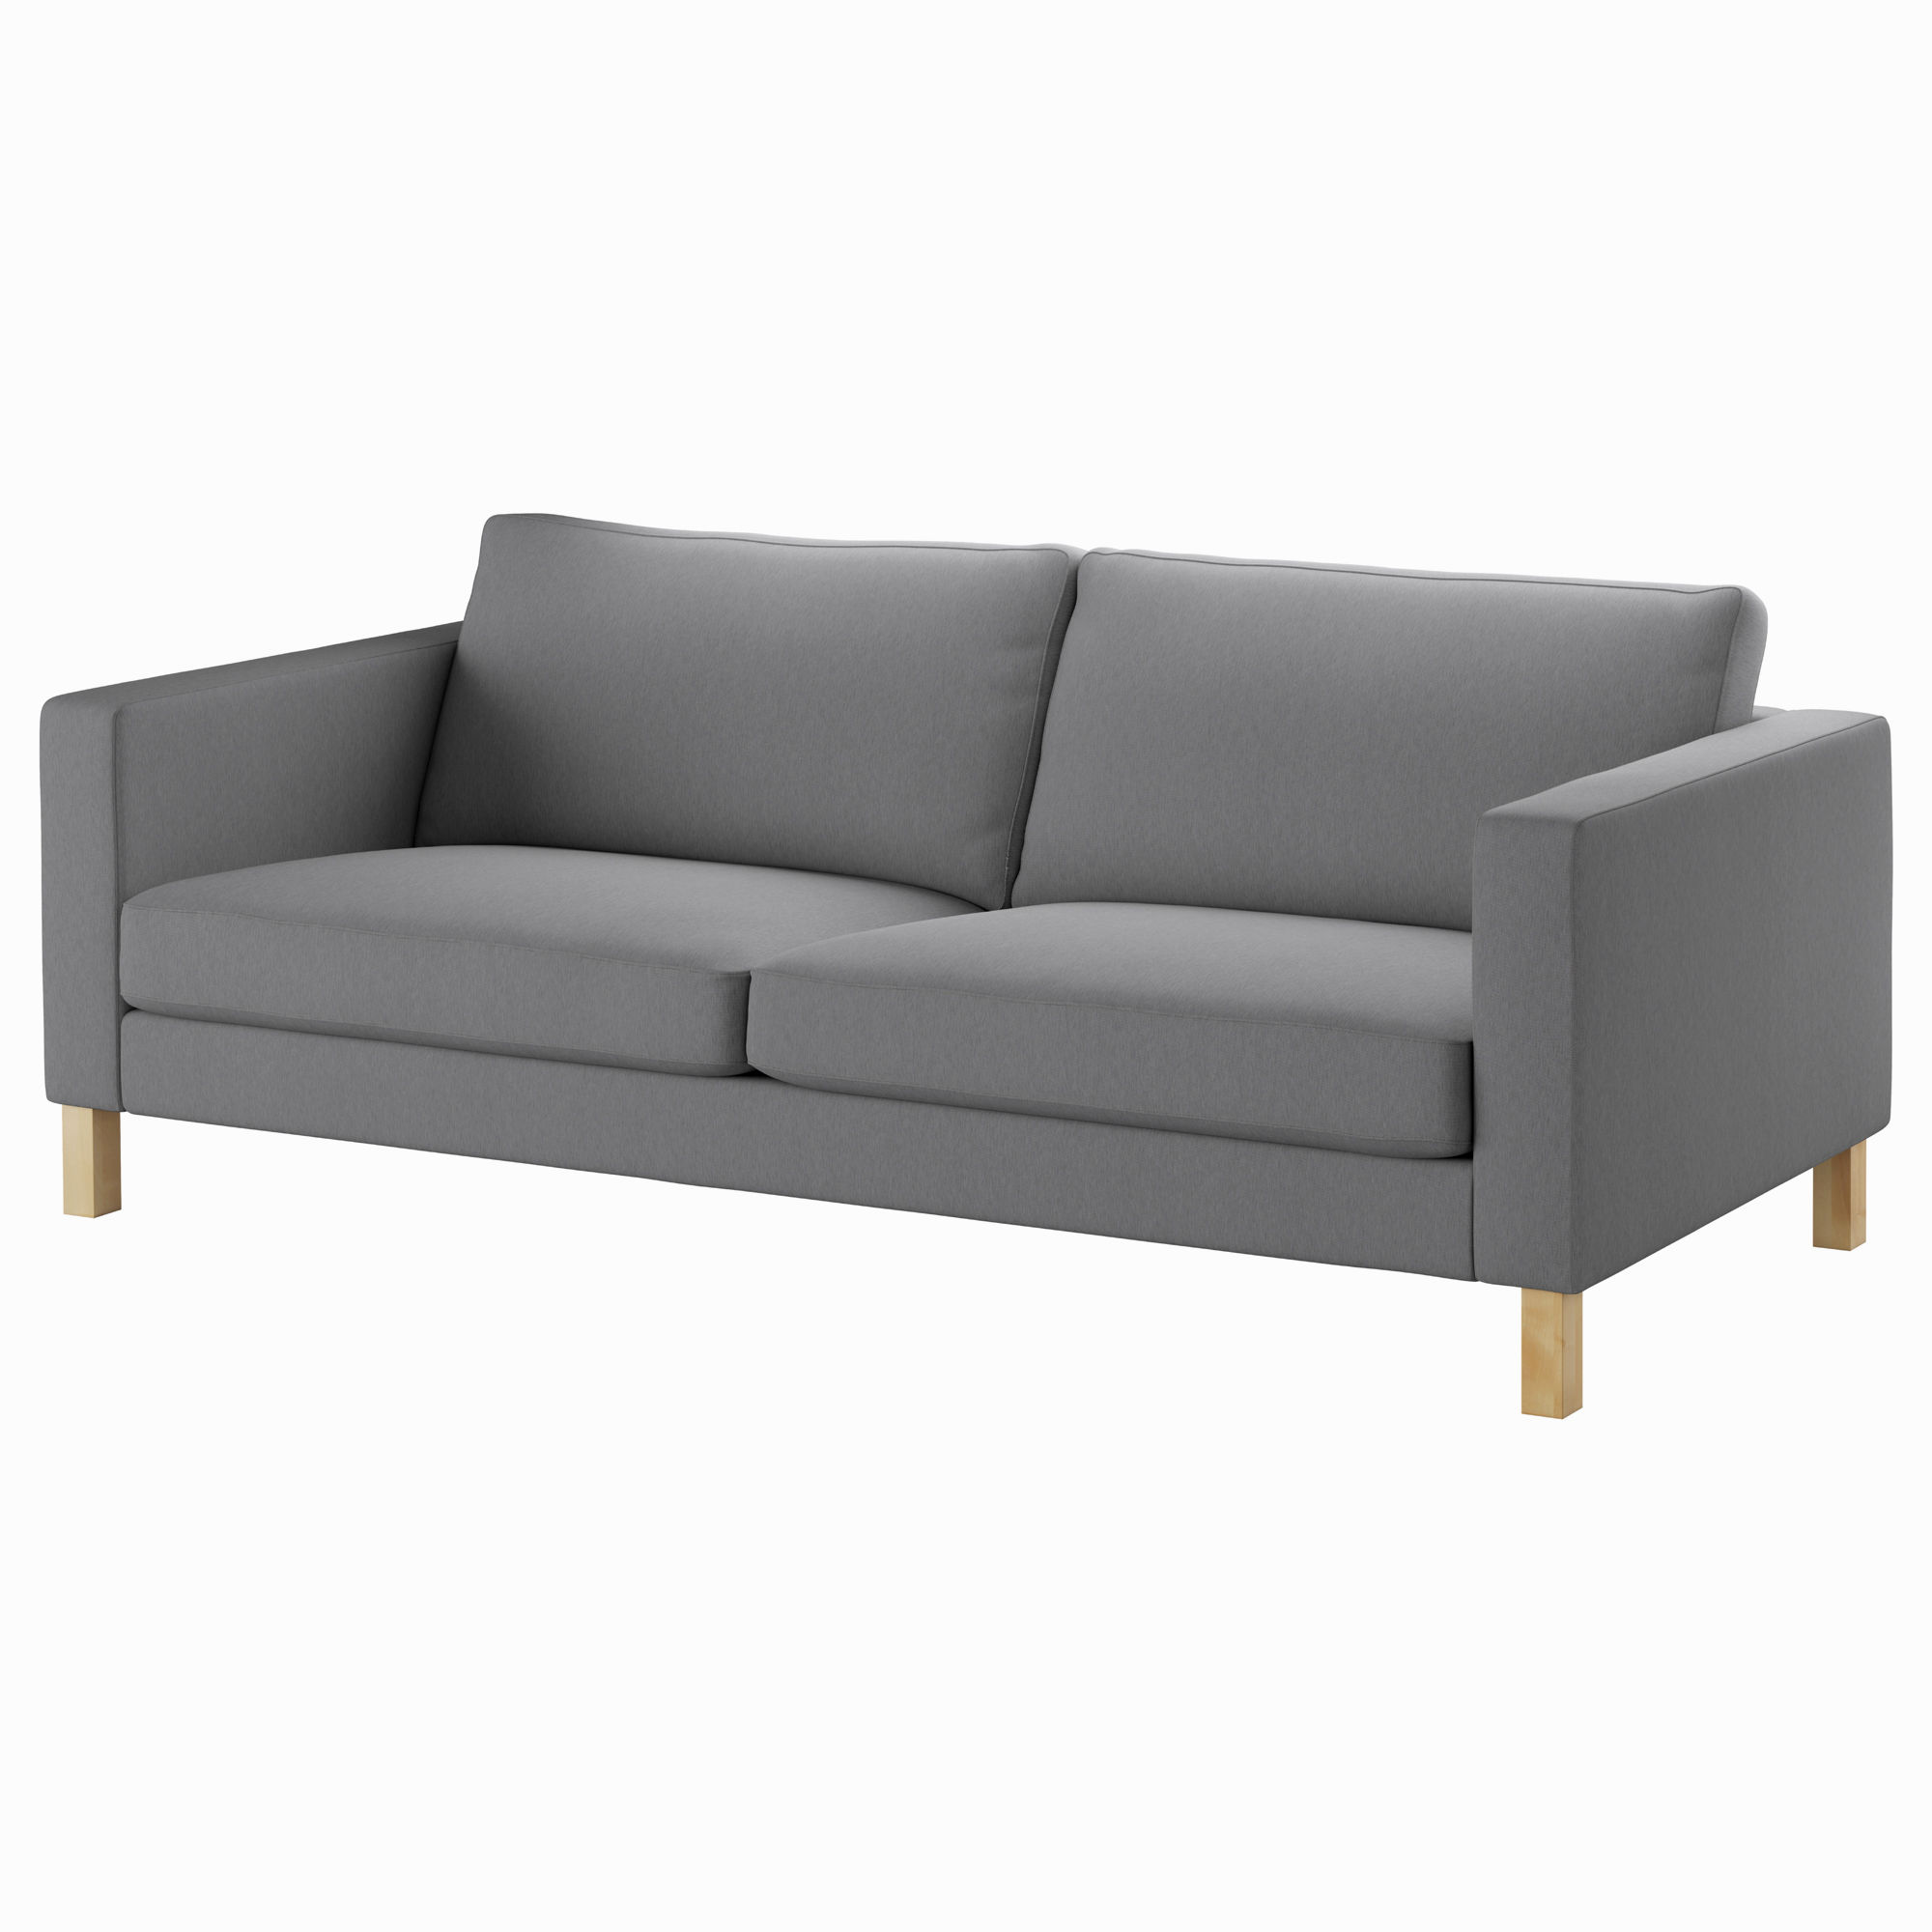 fantastic ikea knislinge sofa decoration-Terrific Ikea Knislinge sofa Wallpaper